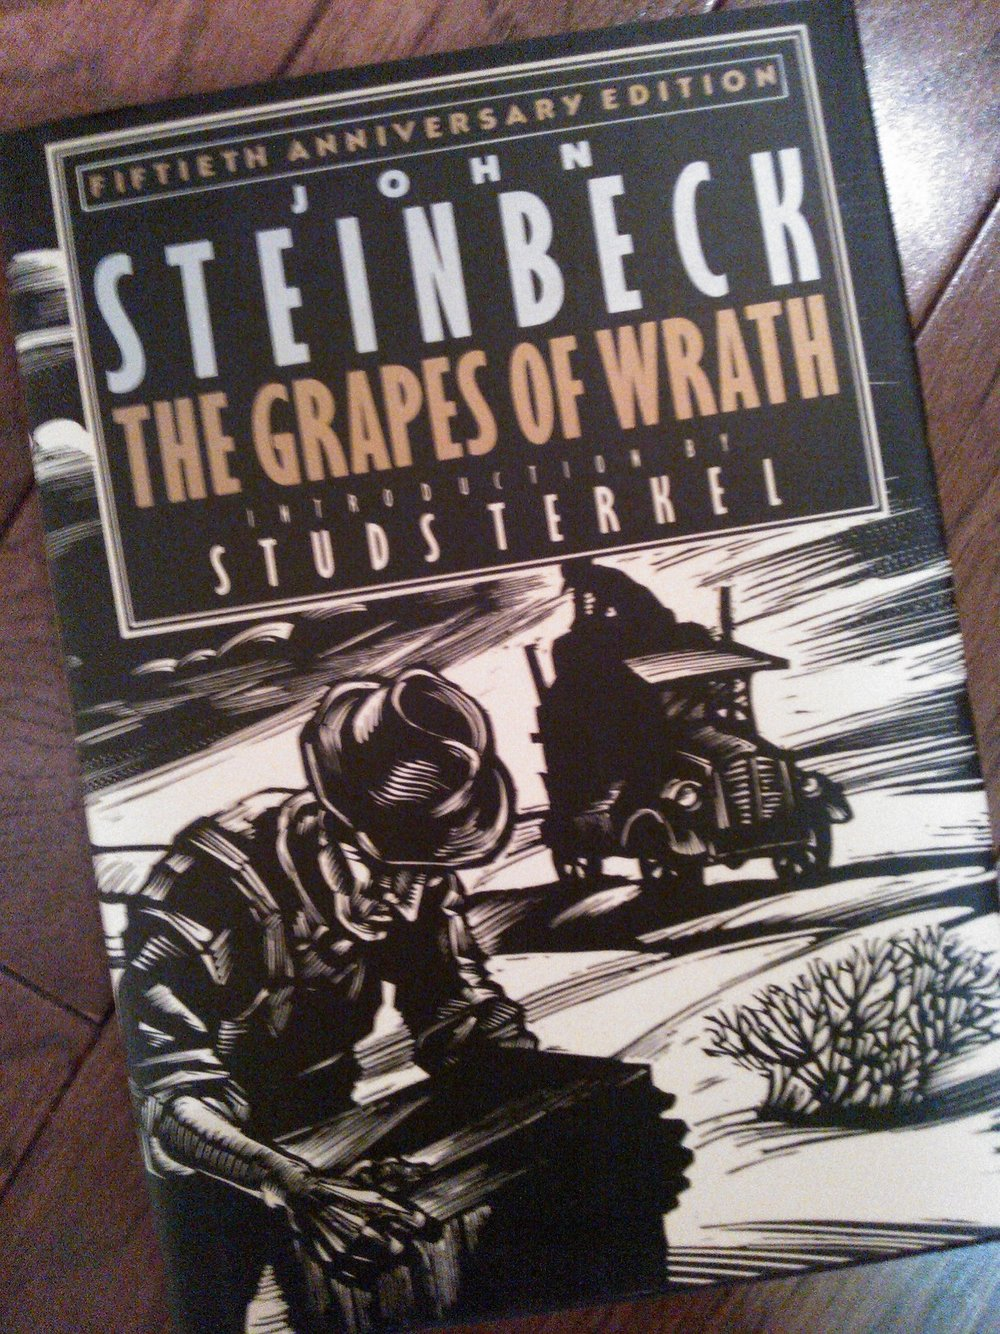 My personal copy of Steinbeck's Grapes of Wrath. October 2012.